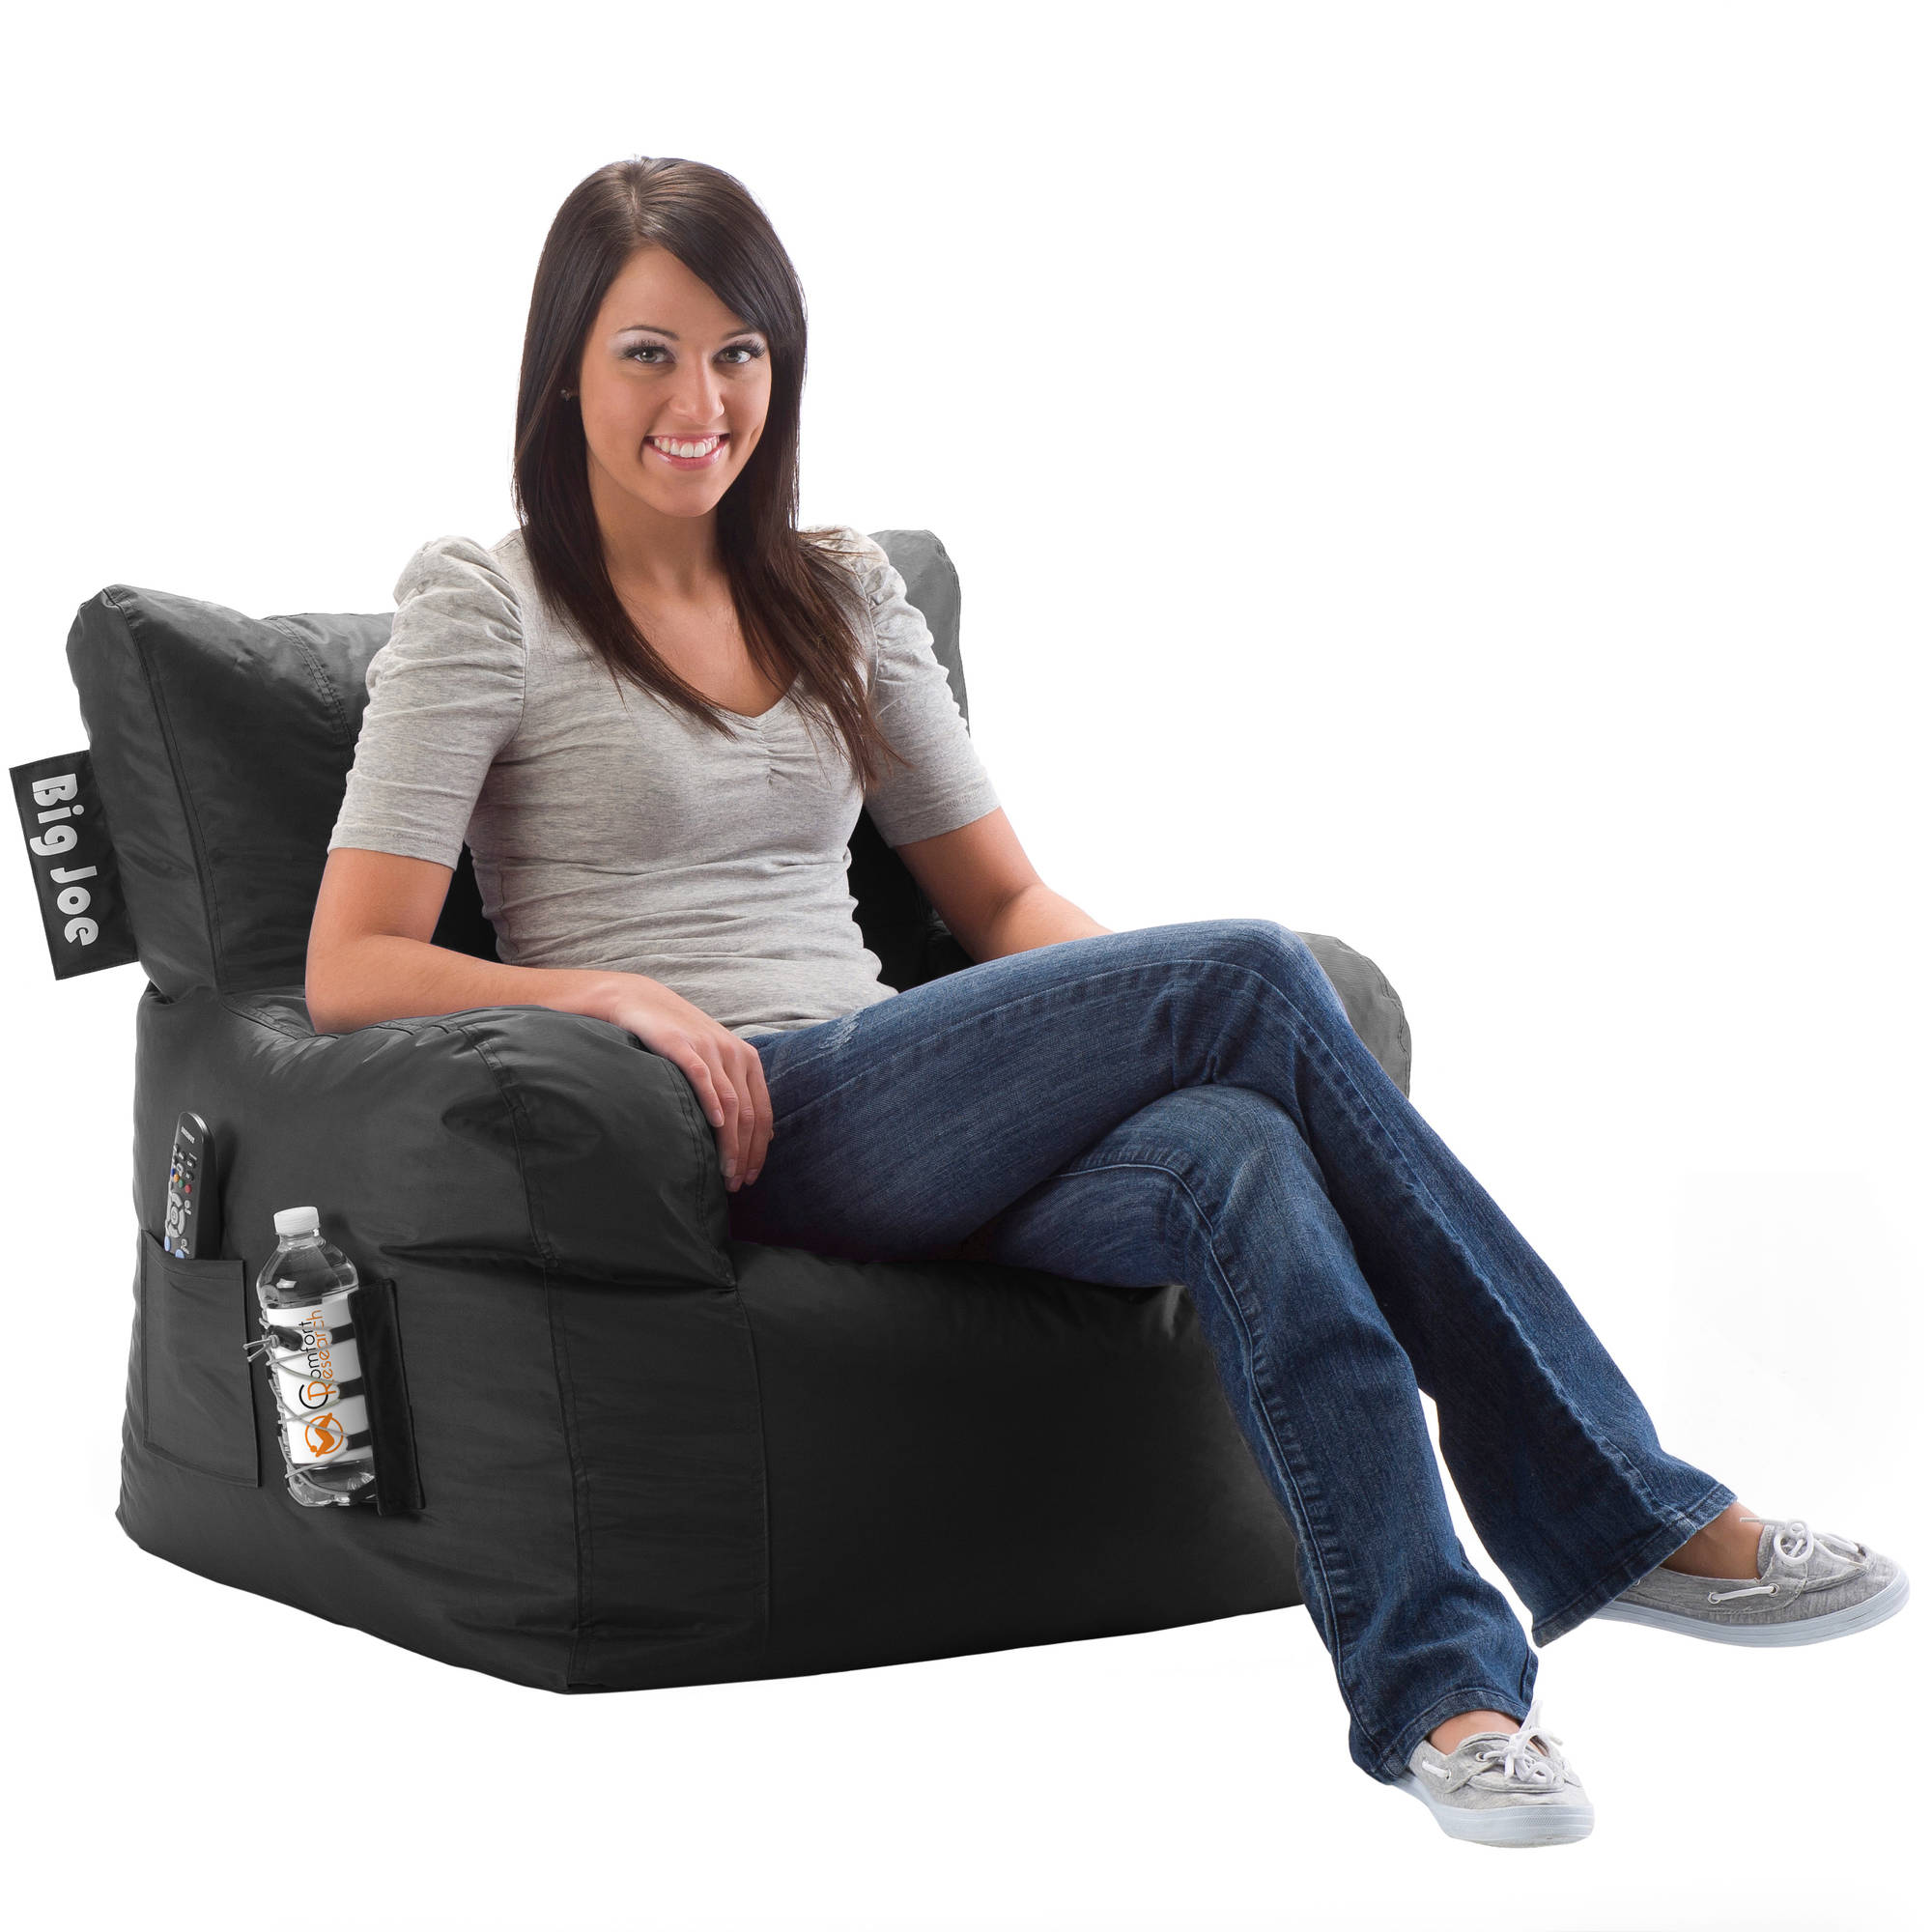 big joe bean bag chair multiple colors 33 x 32 x 25